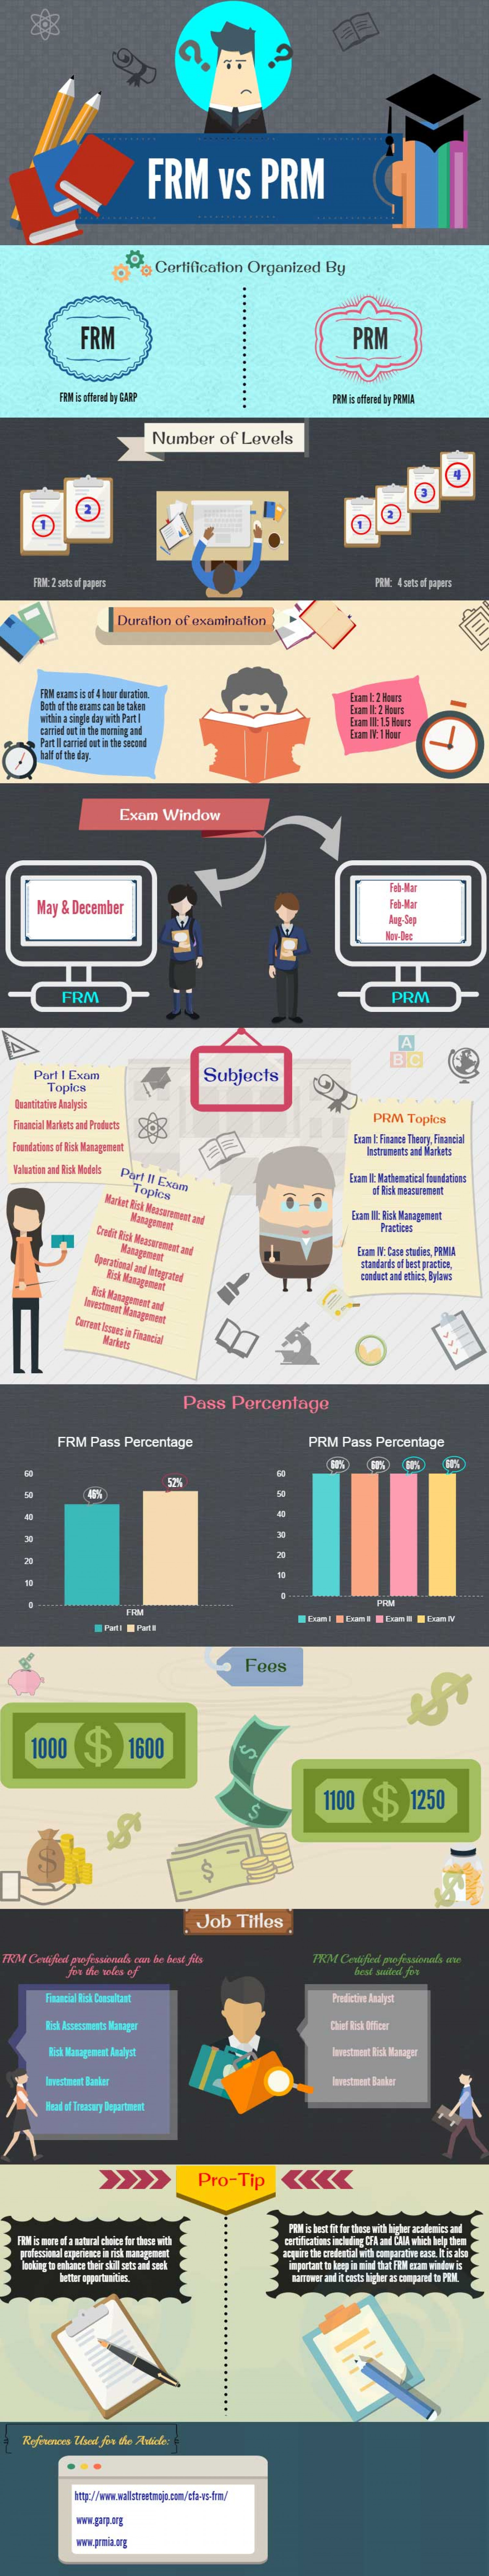 FRM vs PRM Infographic